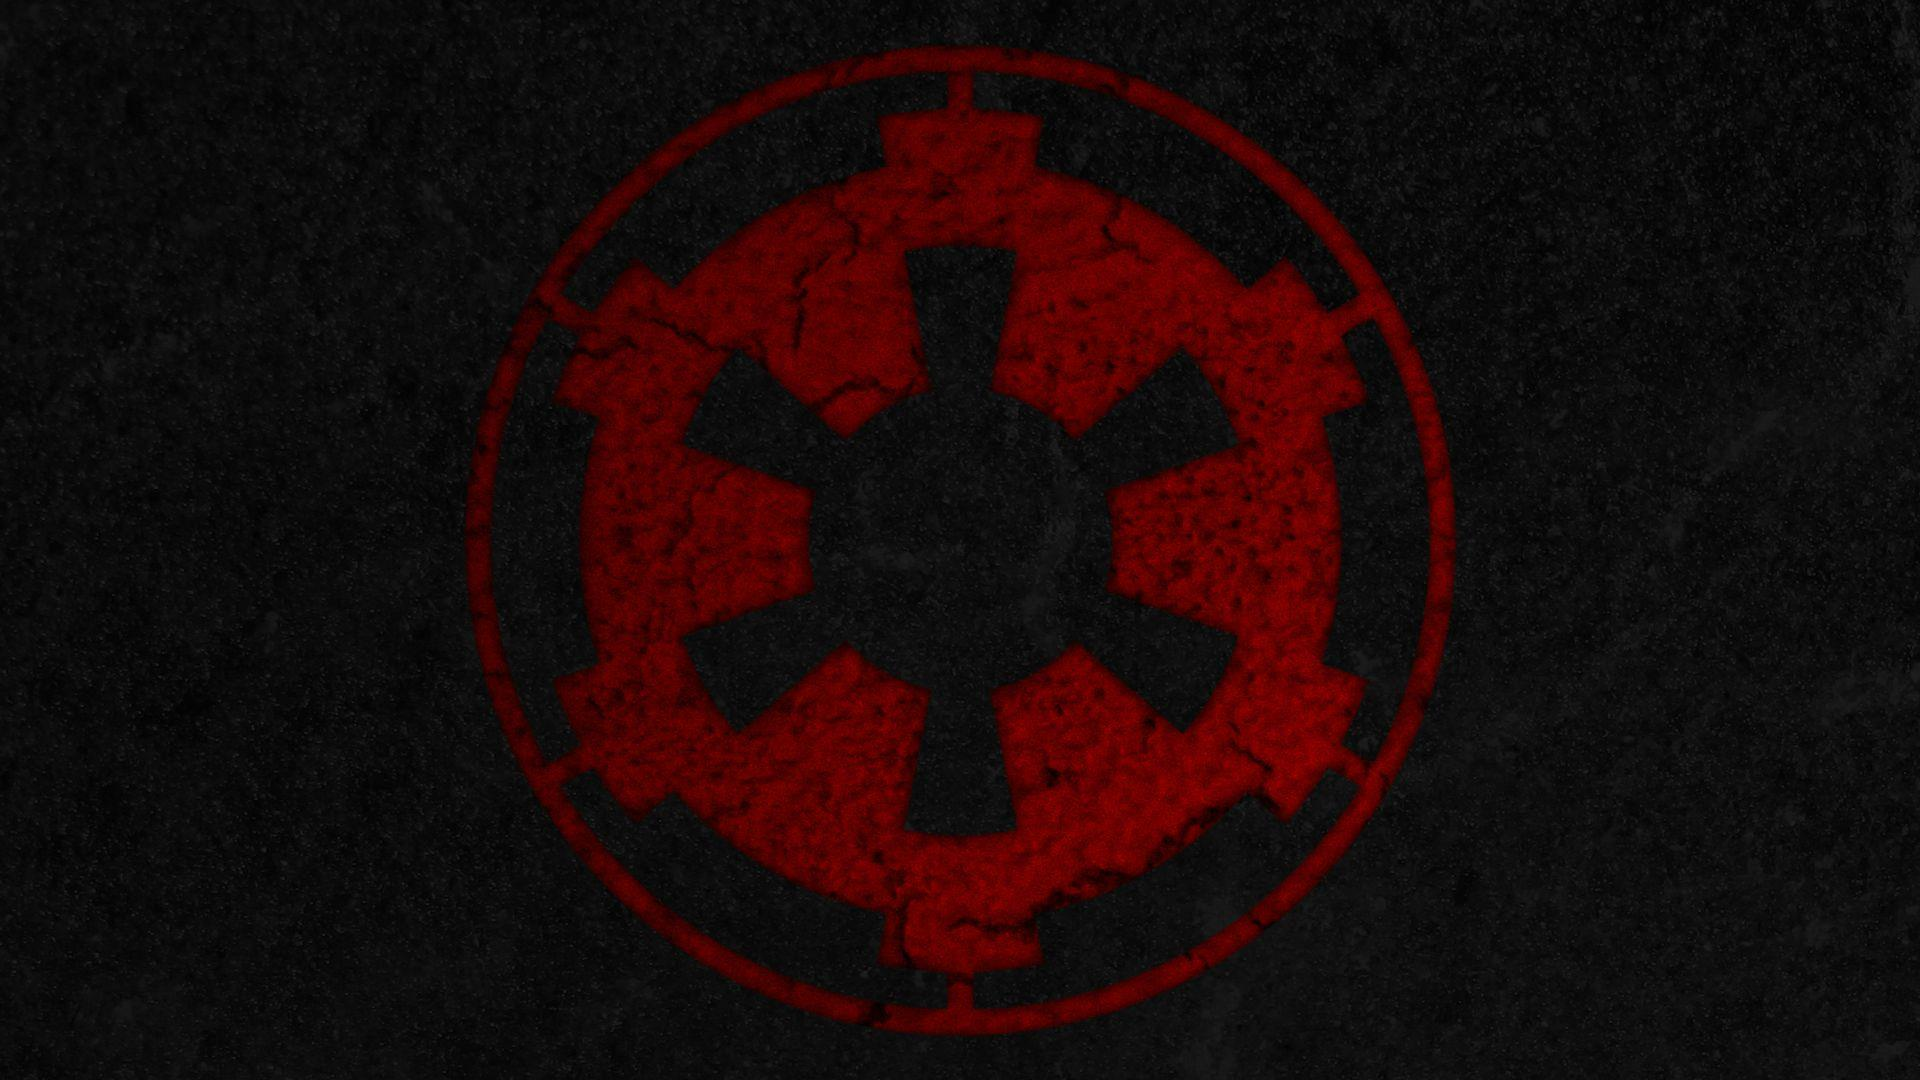 Star Wars Empire Logo Wallpapers Top Free Star Wars Empire Logo Backgrounds Wallpaperaccess